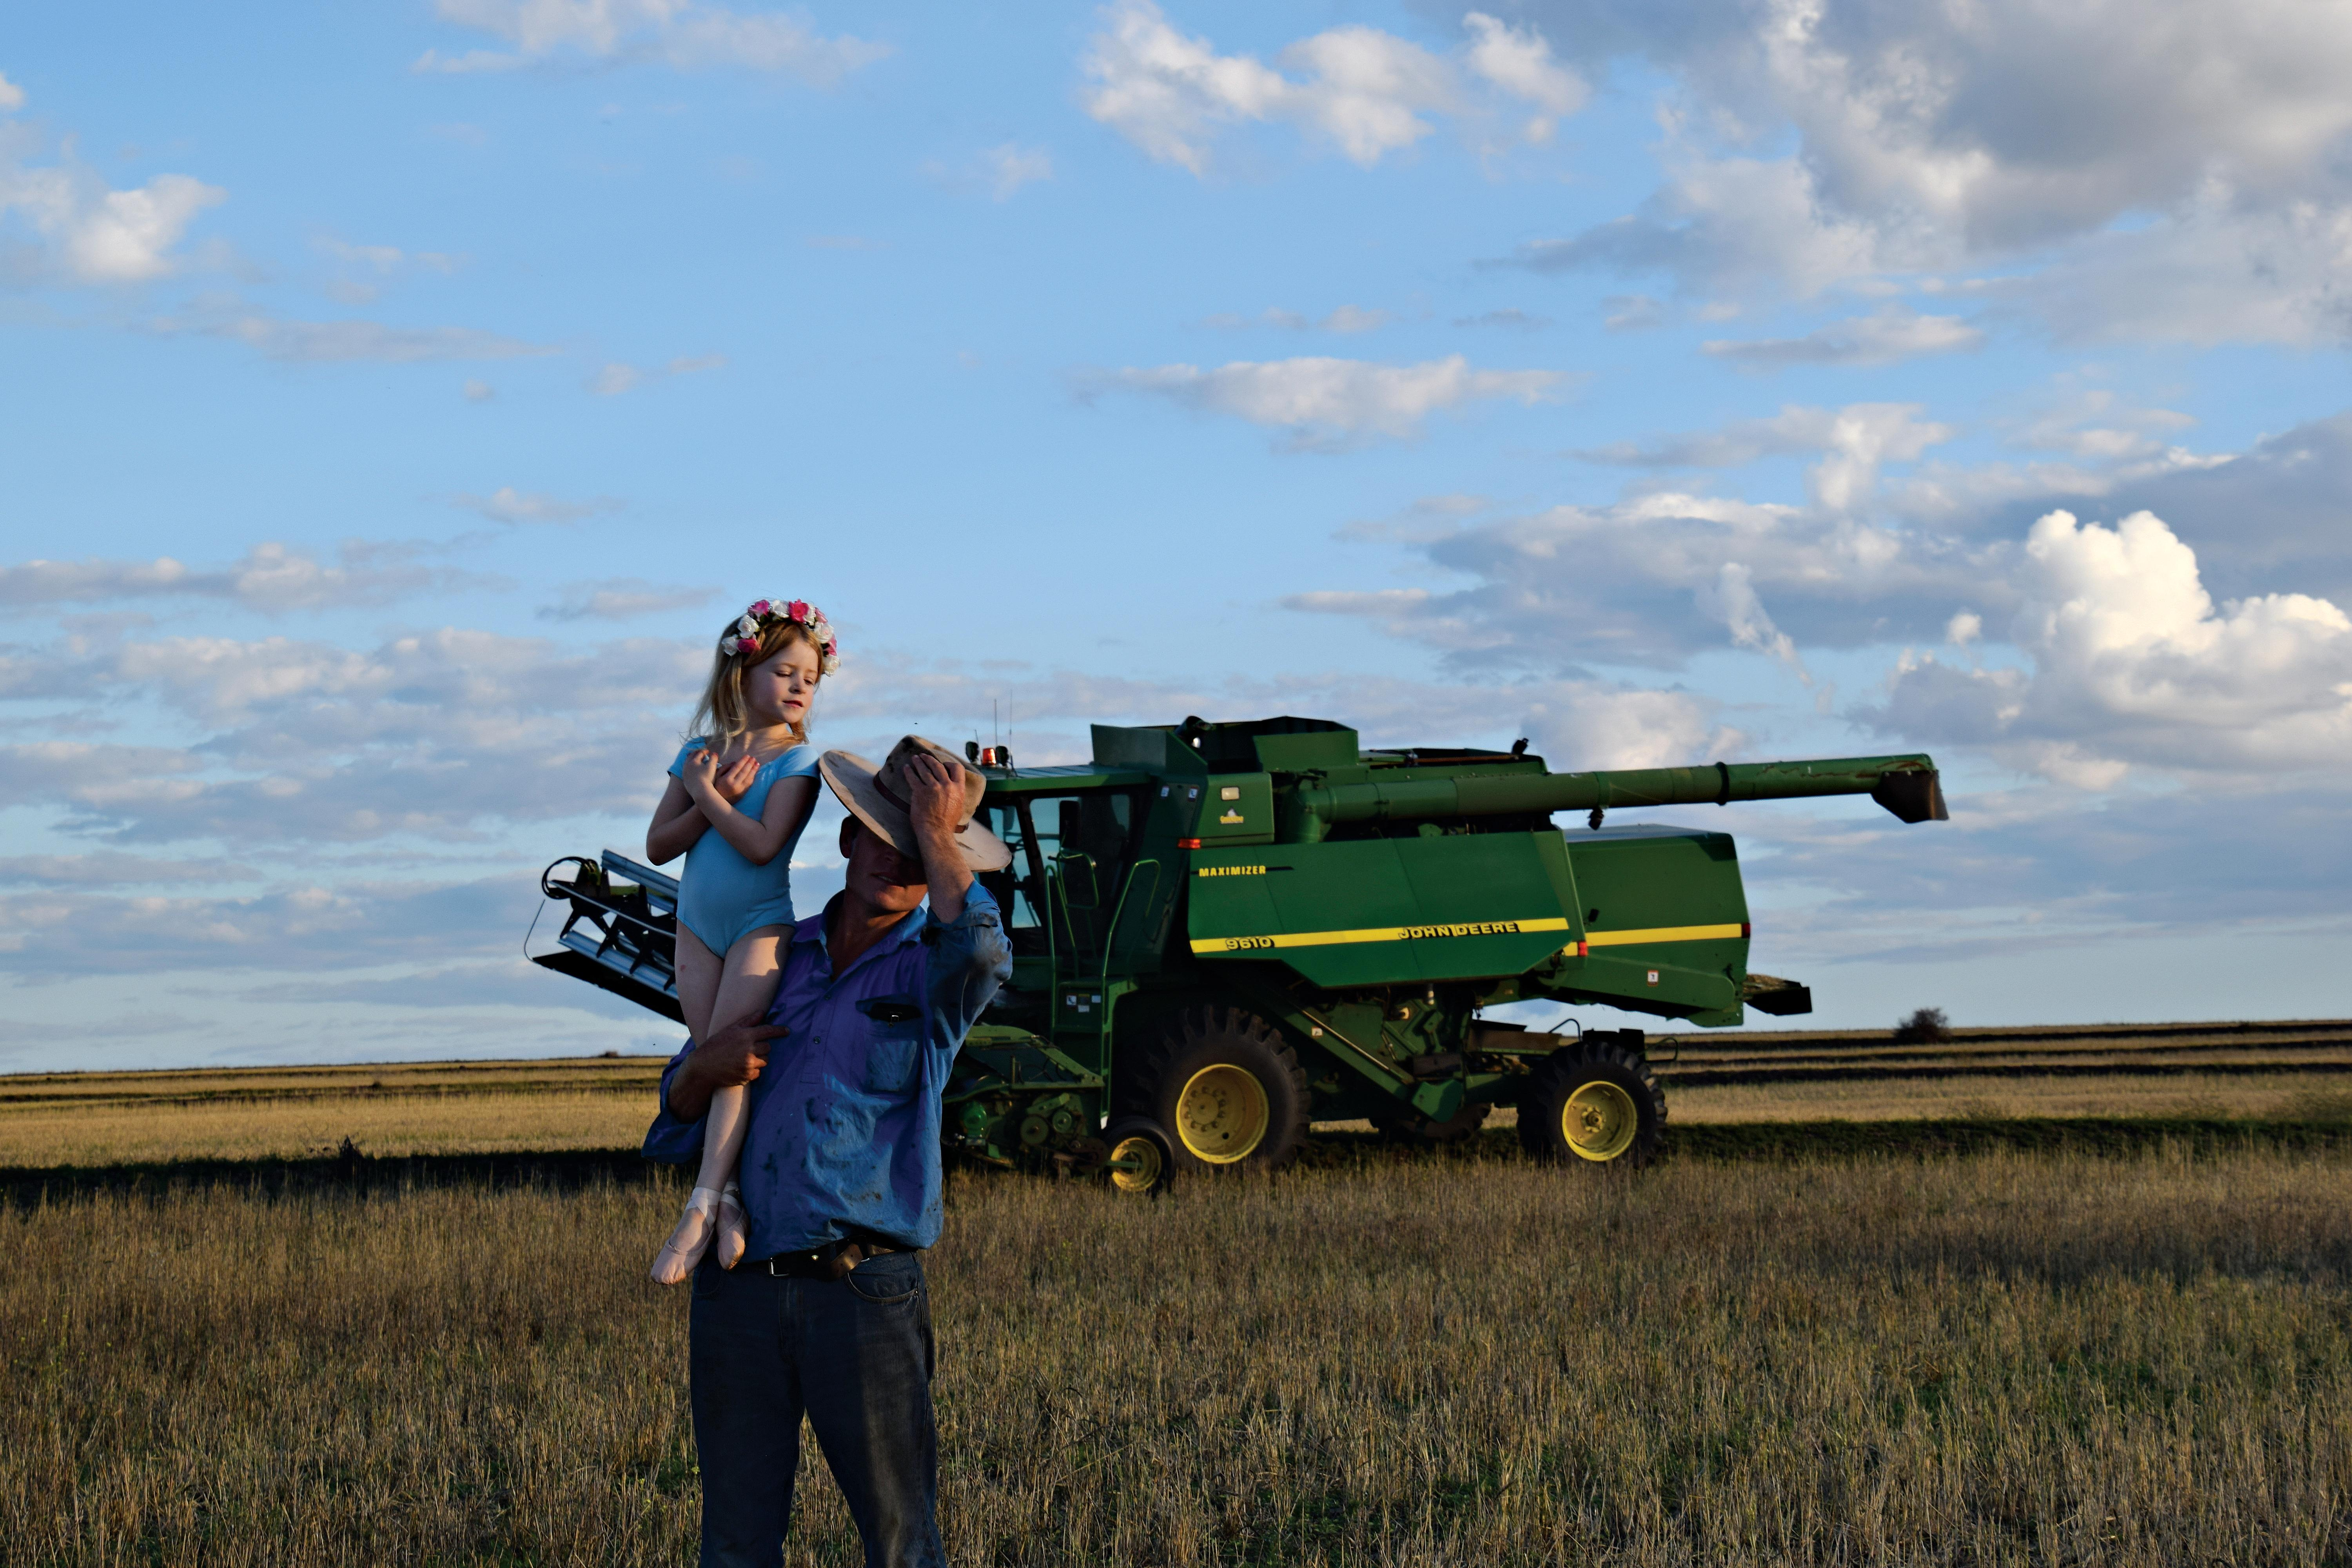 Florence Nason, 5, sits on dad Patrick Nason's shoulders while he takes a break from harvesting on their farm in western Queensland.